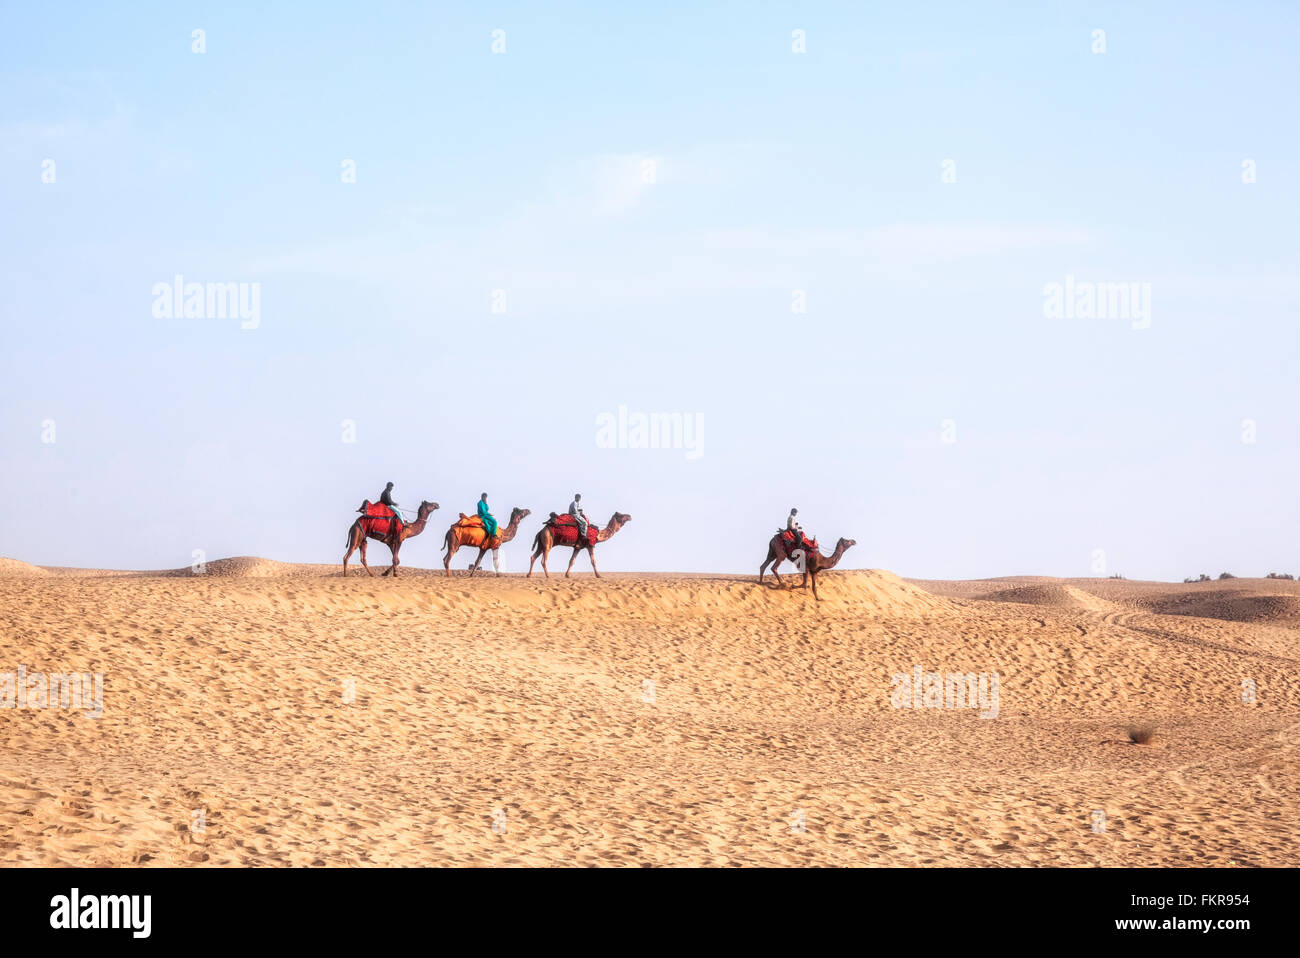 Nomadic people on camels in the Thar desert, Rajasthan, India - Stock Image